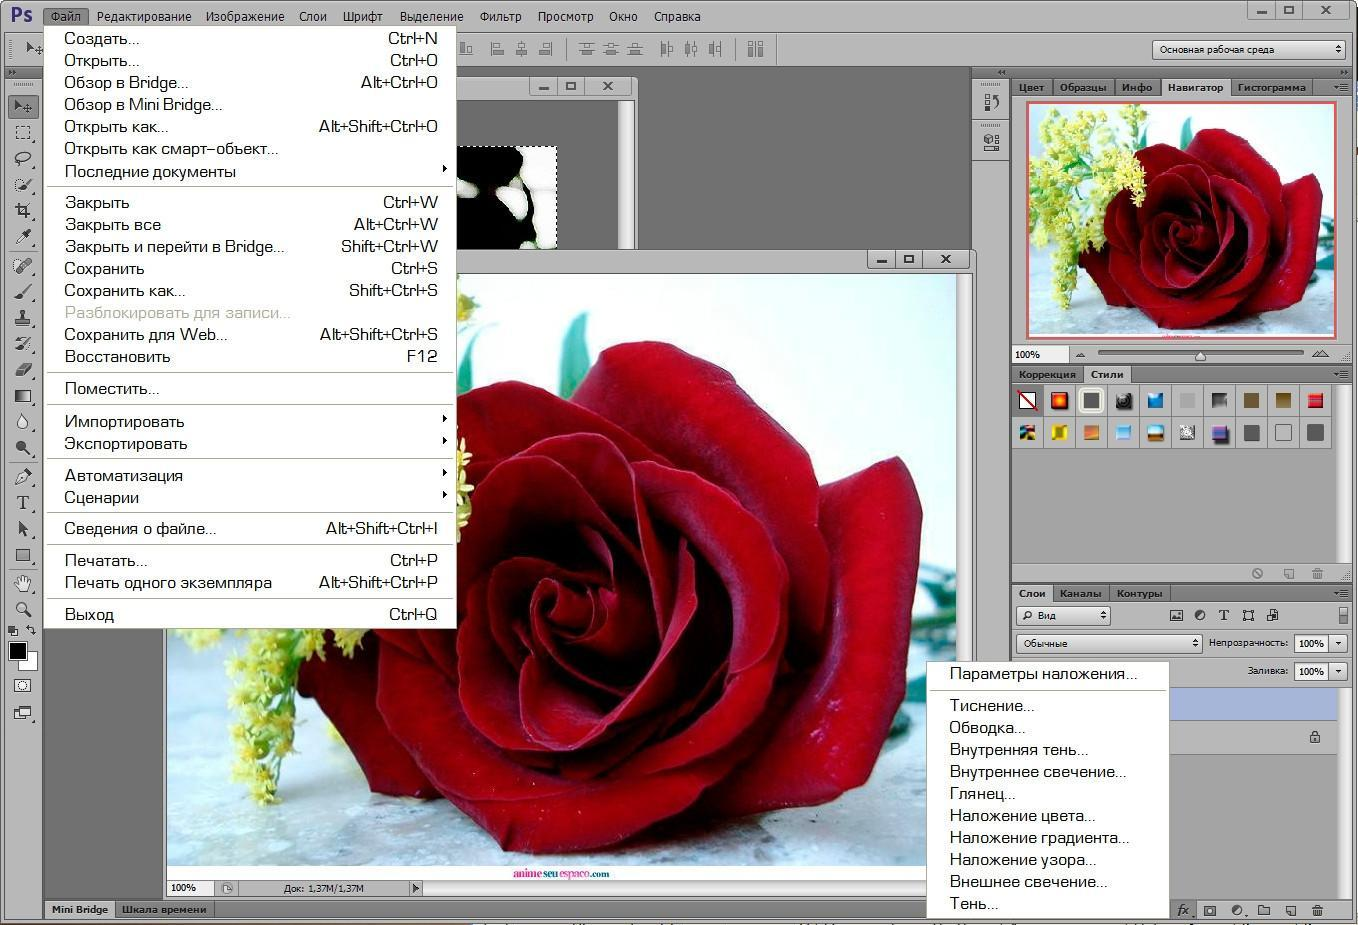 Adobe Photoshop Cs5 Free Download Full Version With Crack For Mac